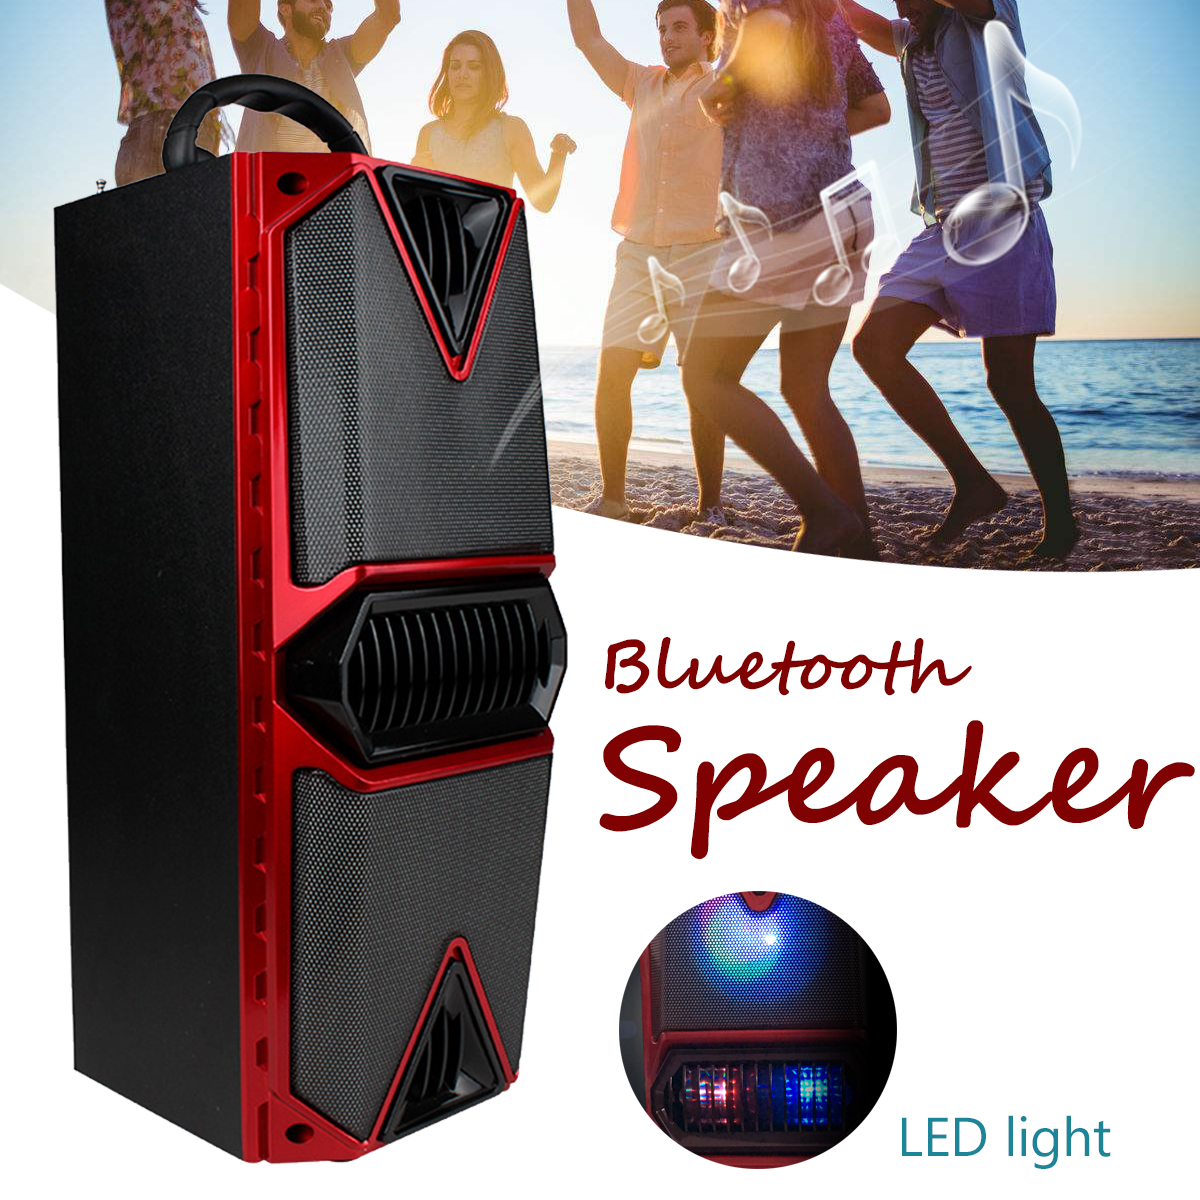 Wireless Bluetooth Speaker Portable Handheld Speaker Car Mounted Square Dancing Loudspeaker Sound System Outdoor Stereo Music tronsmart element t6 mini bluetooth speaker portable wireless speaker with 360 degree stereo sound for ios android xiaomi player